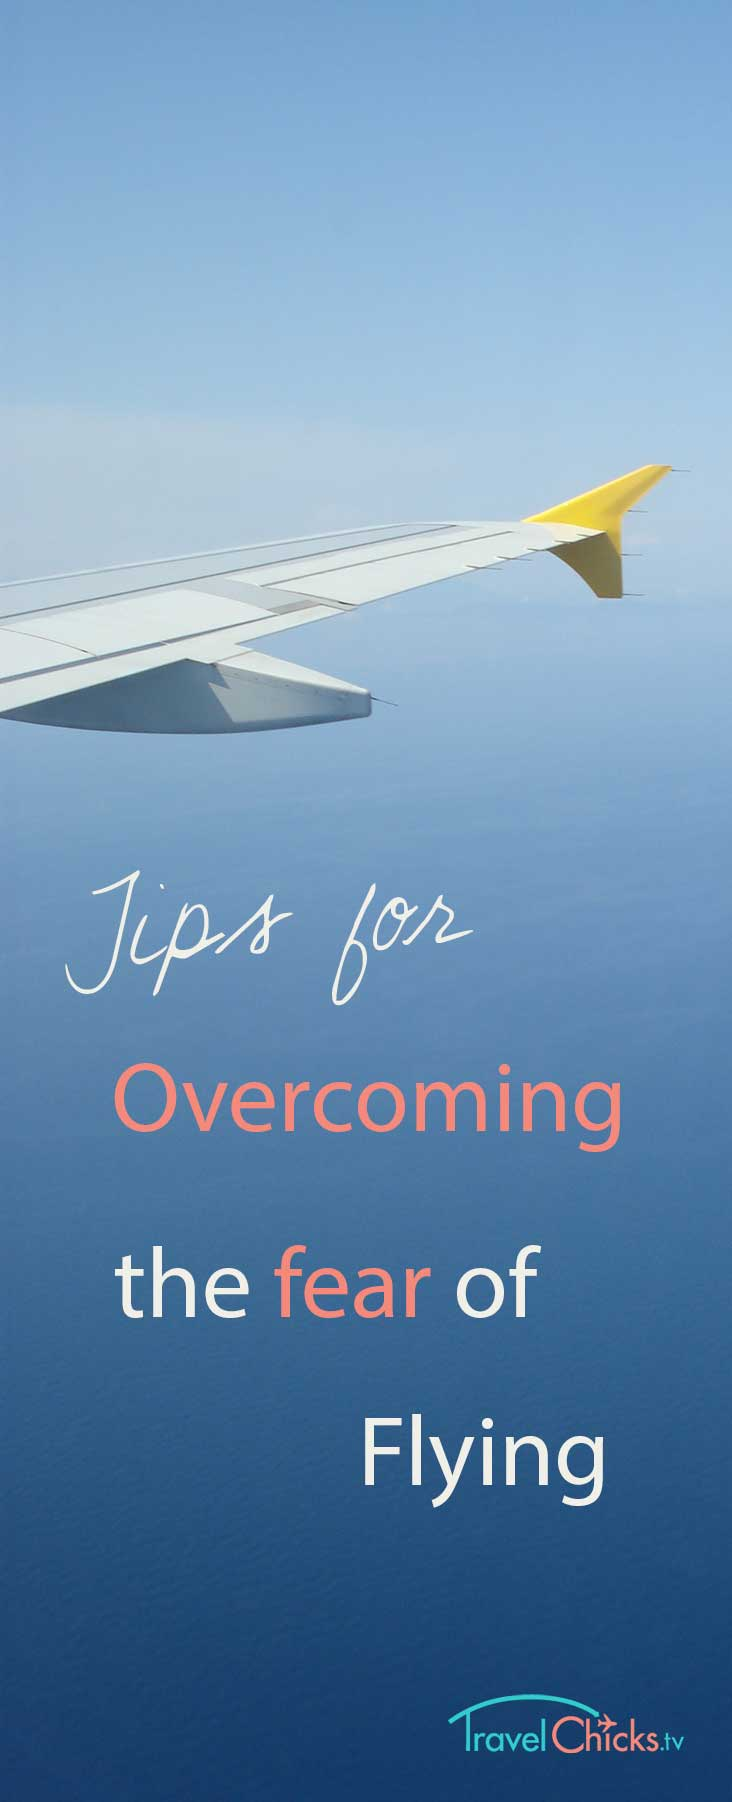 Tips For Overcoming The Fear Of Flying Travel Chicks Travel Chicks